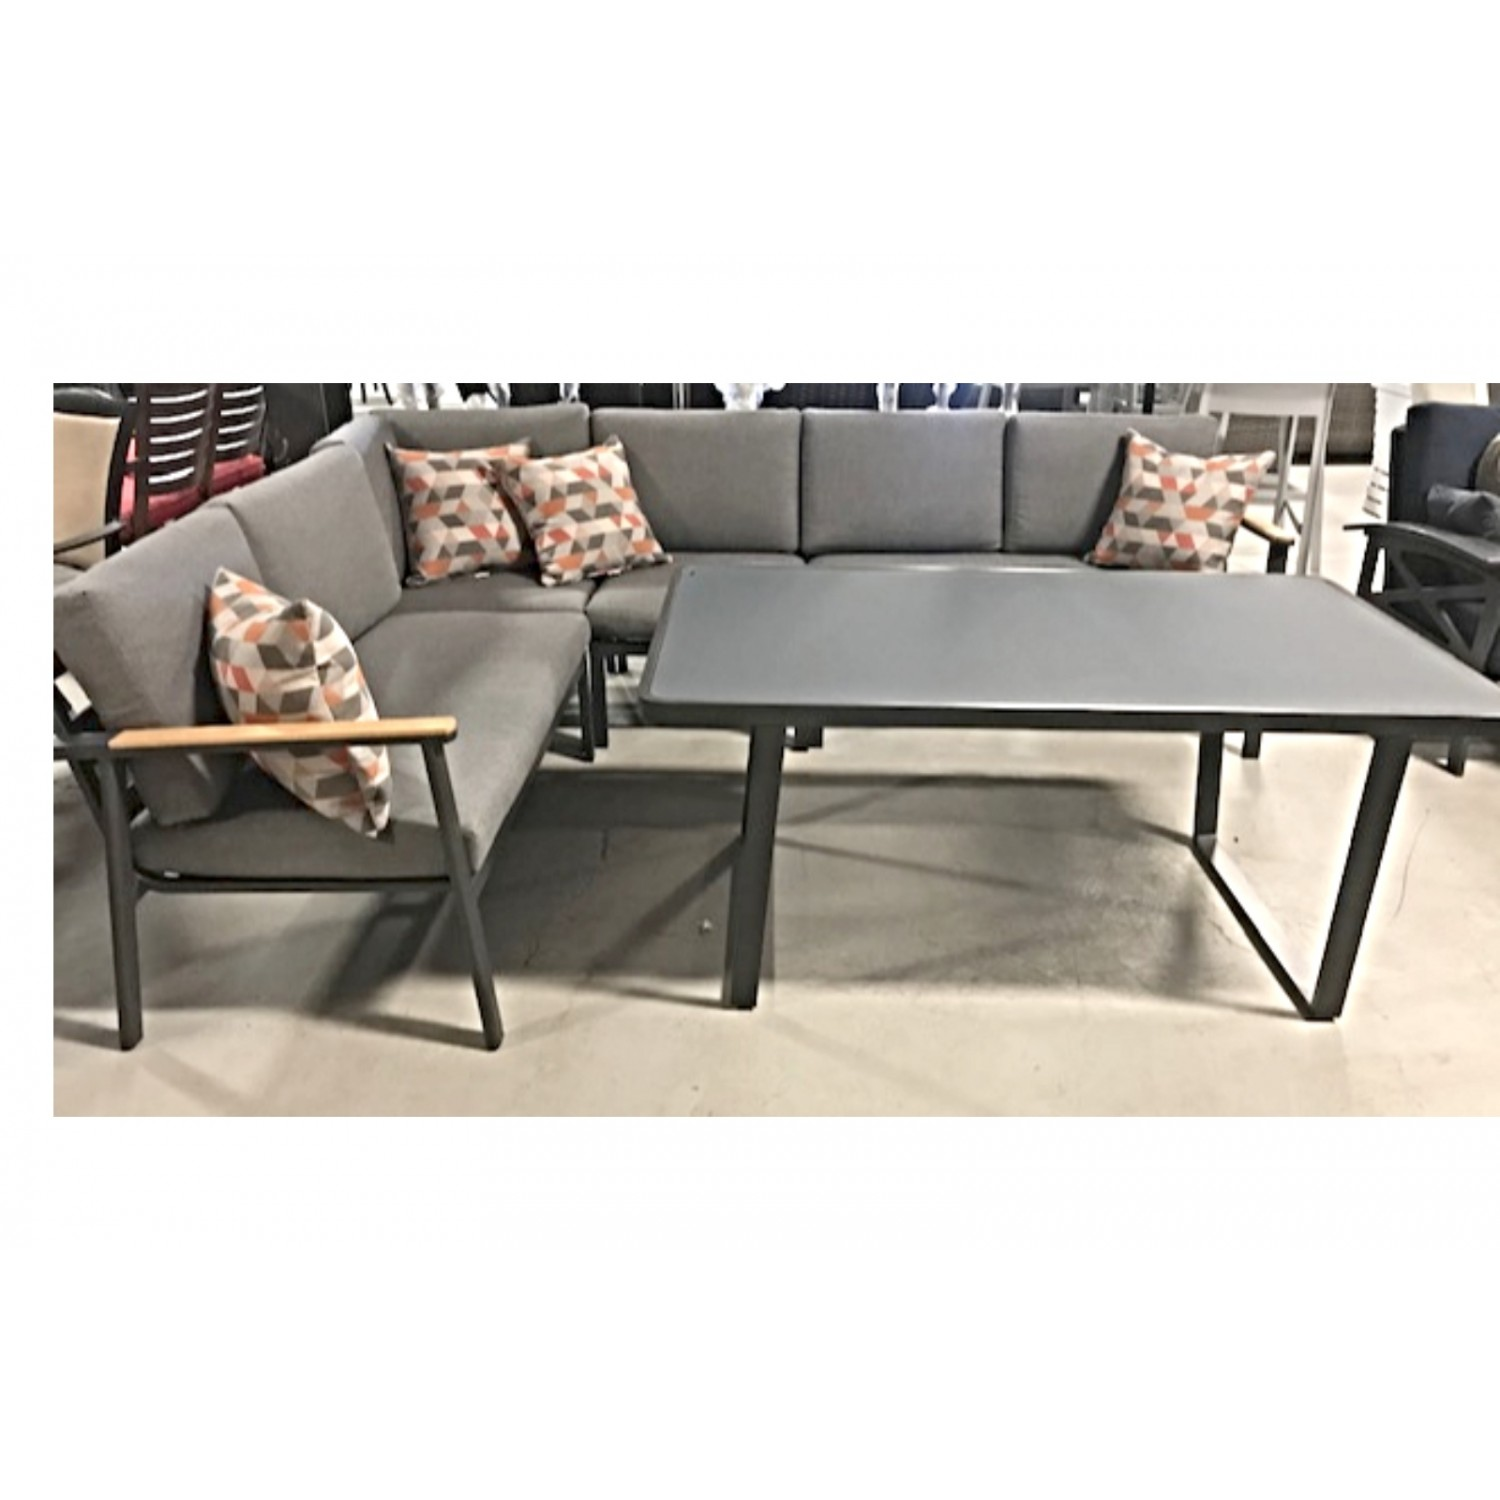 Simmons Outdoor Sectional